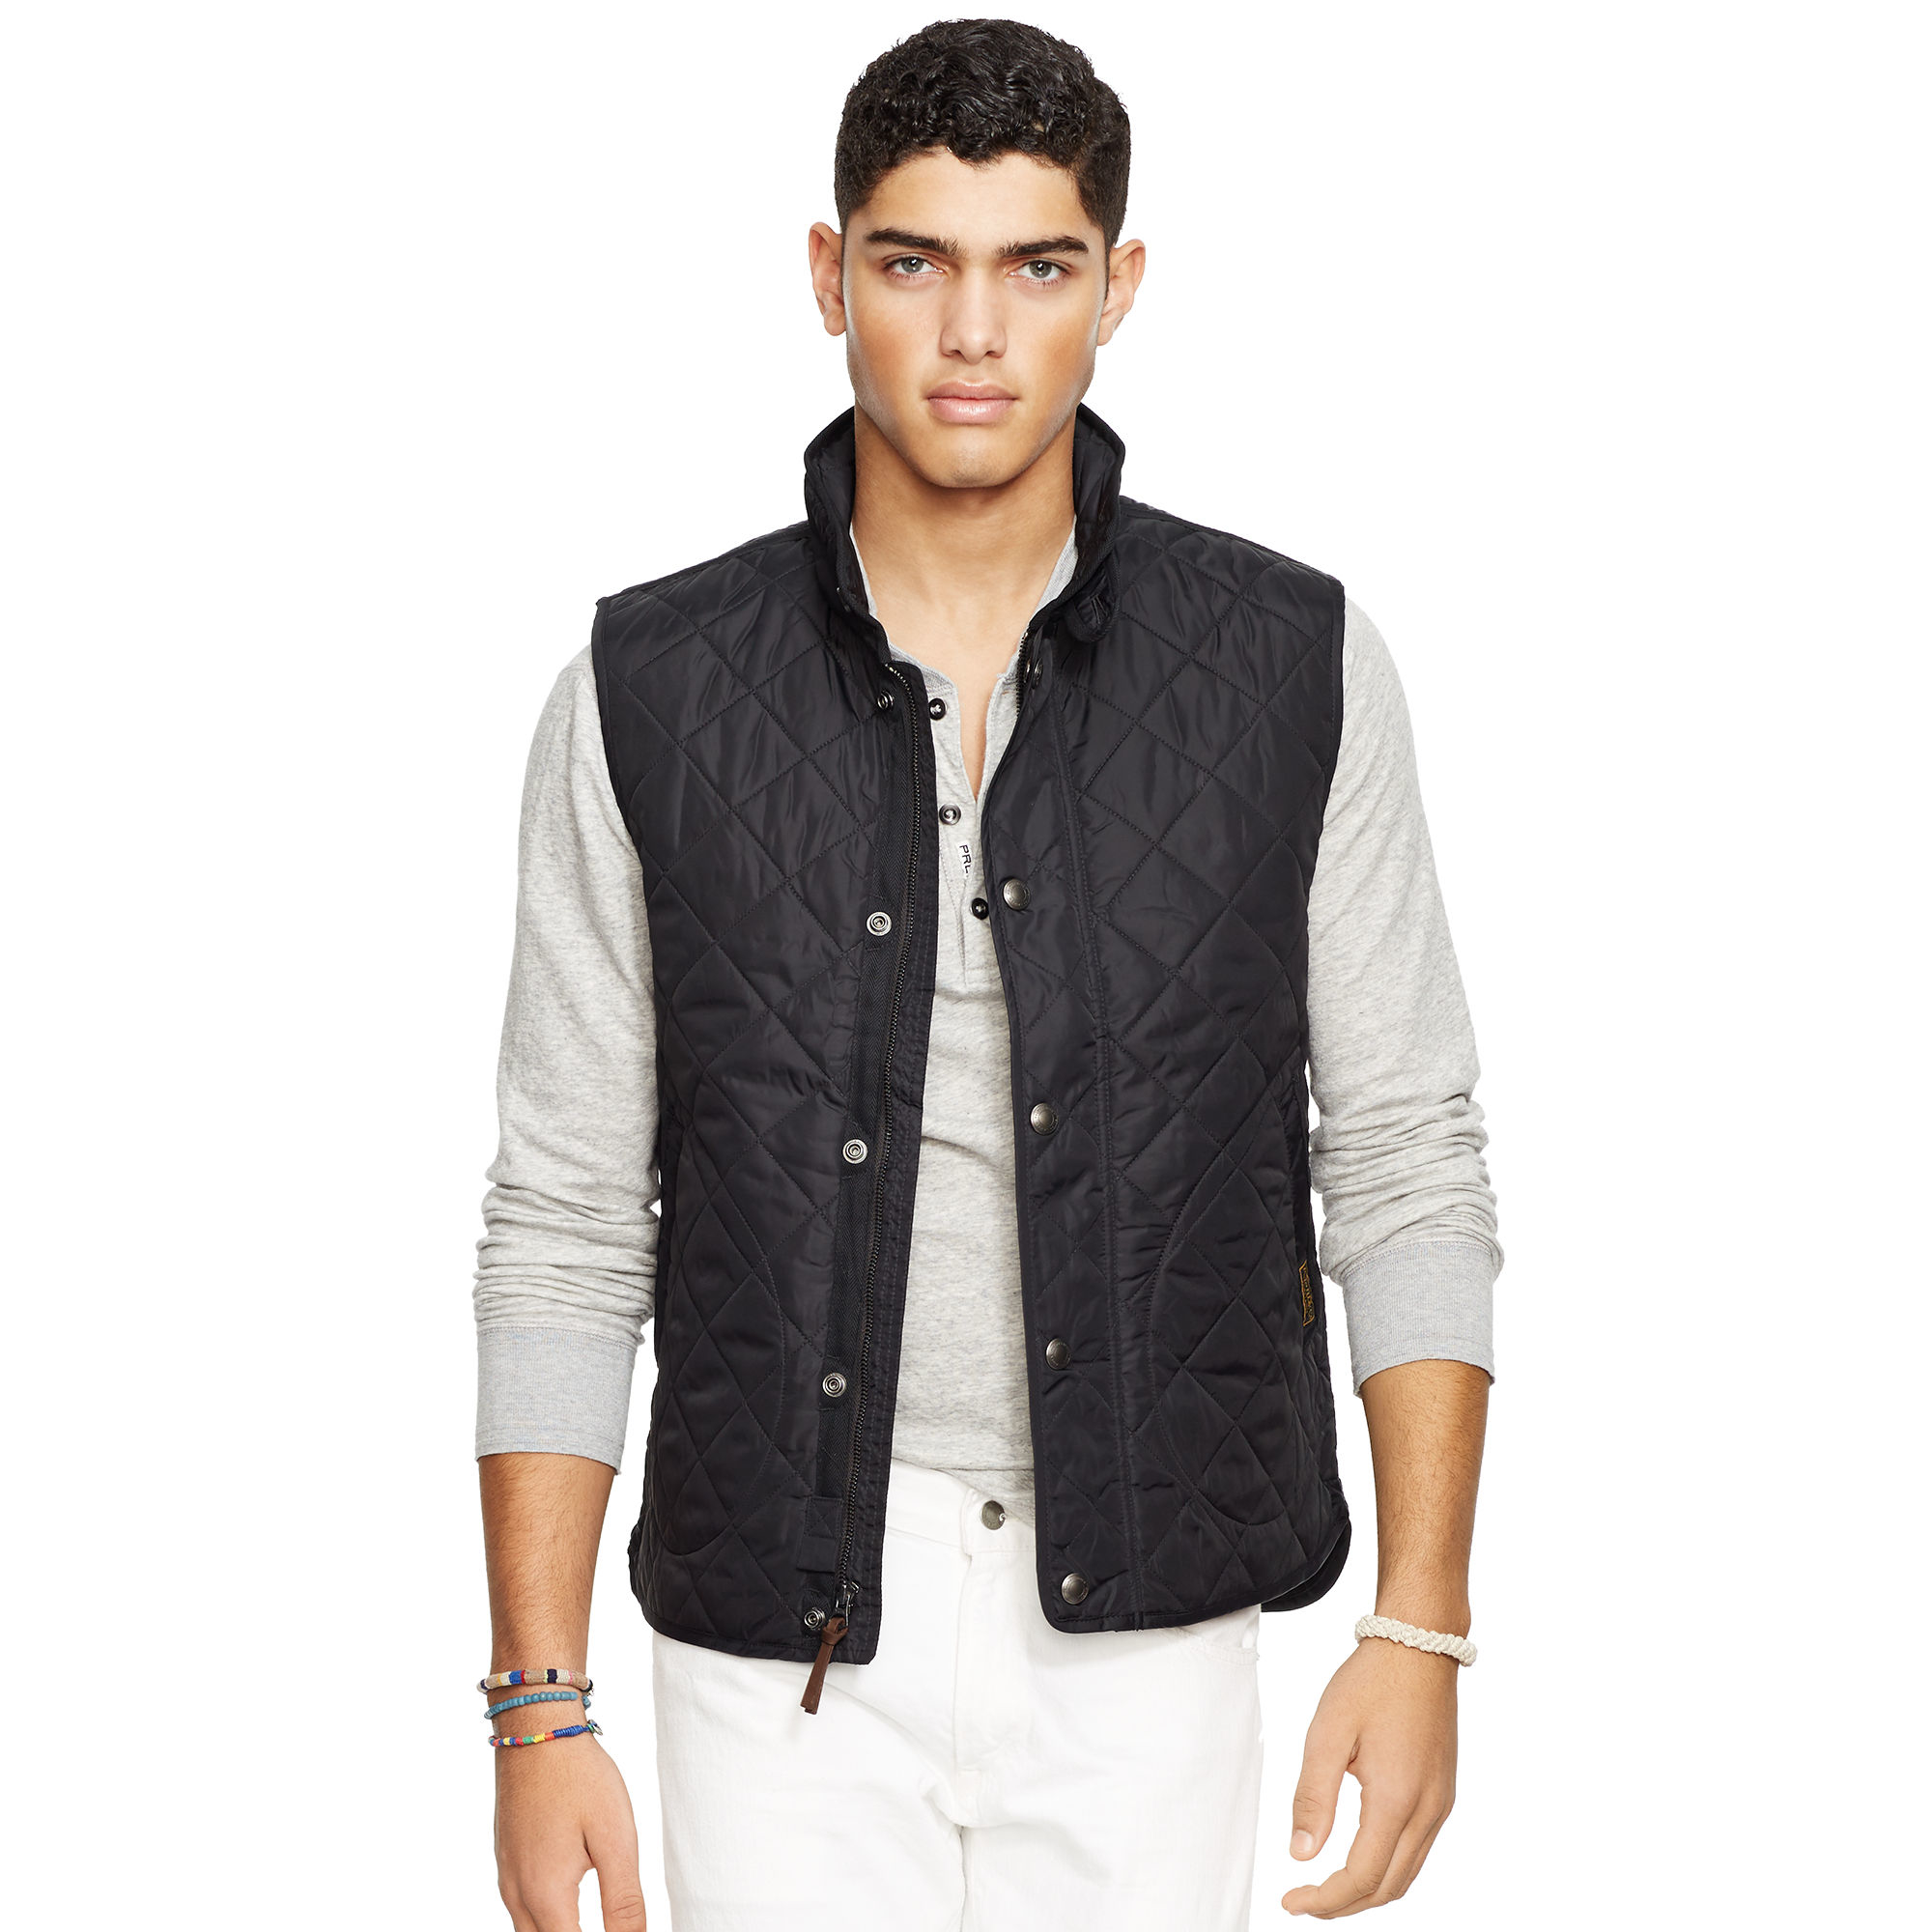 Polo Ralph Lauren Diamond Quilted Vest In Black For Men Lyst